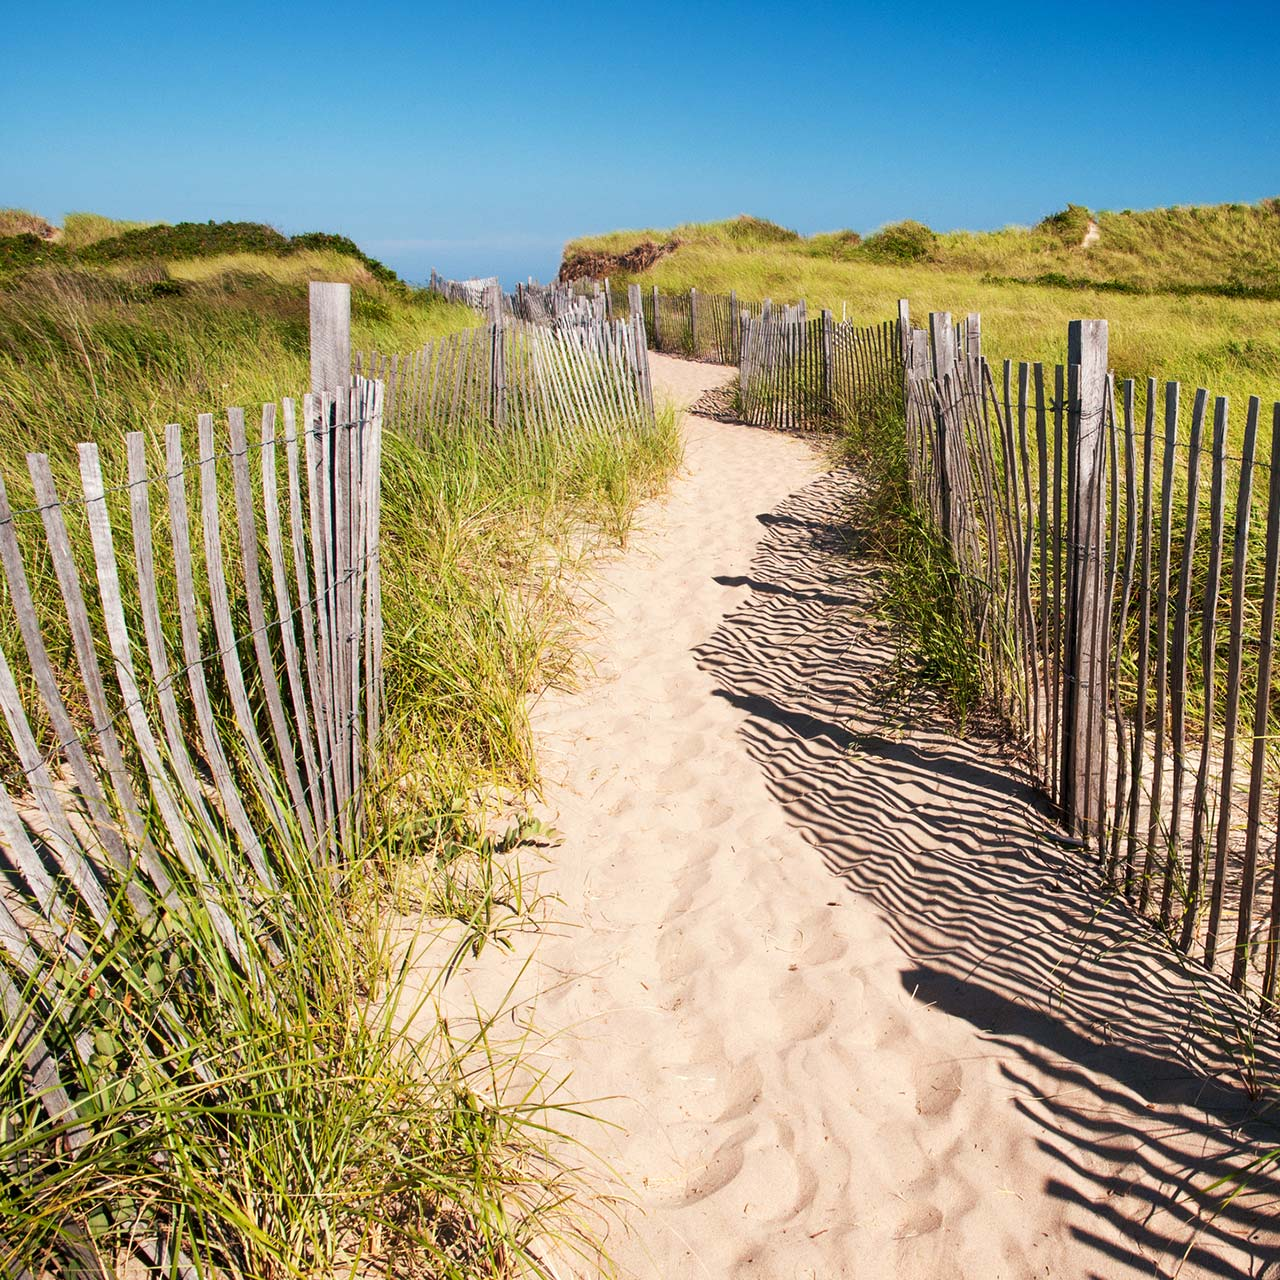 A sandy path lined by a wooden fence at Block Island's Crescent Beach.